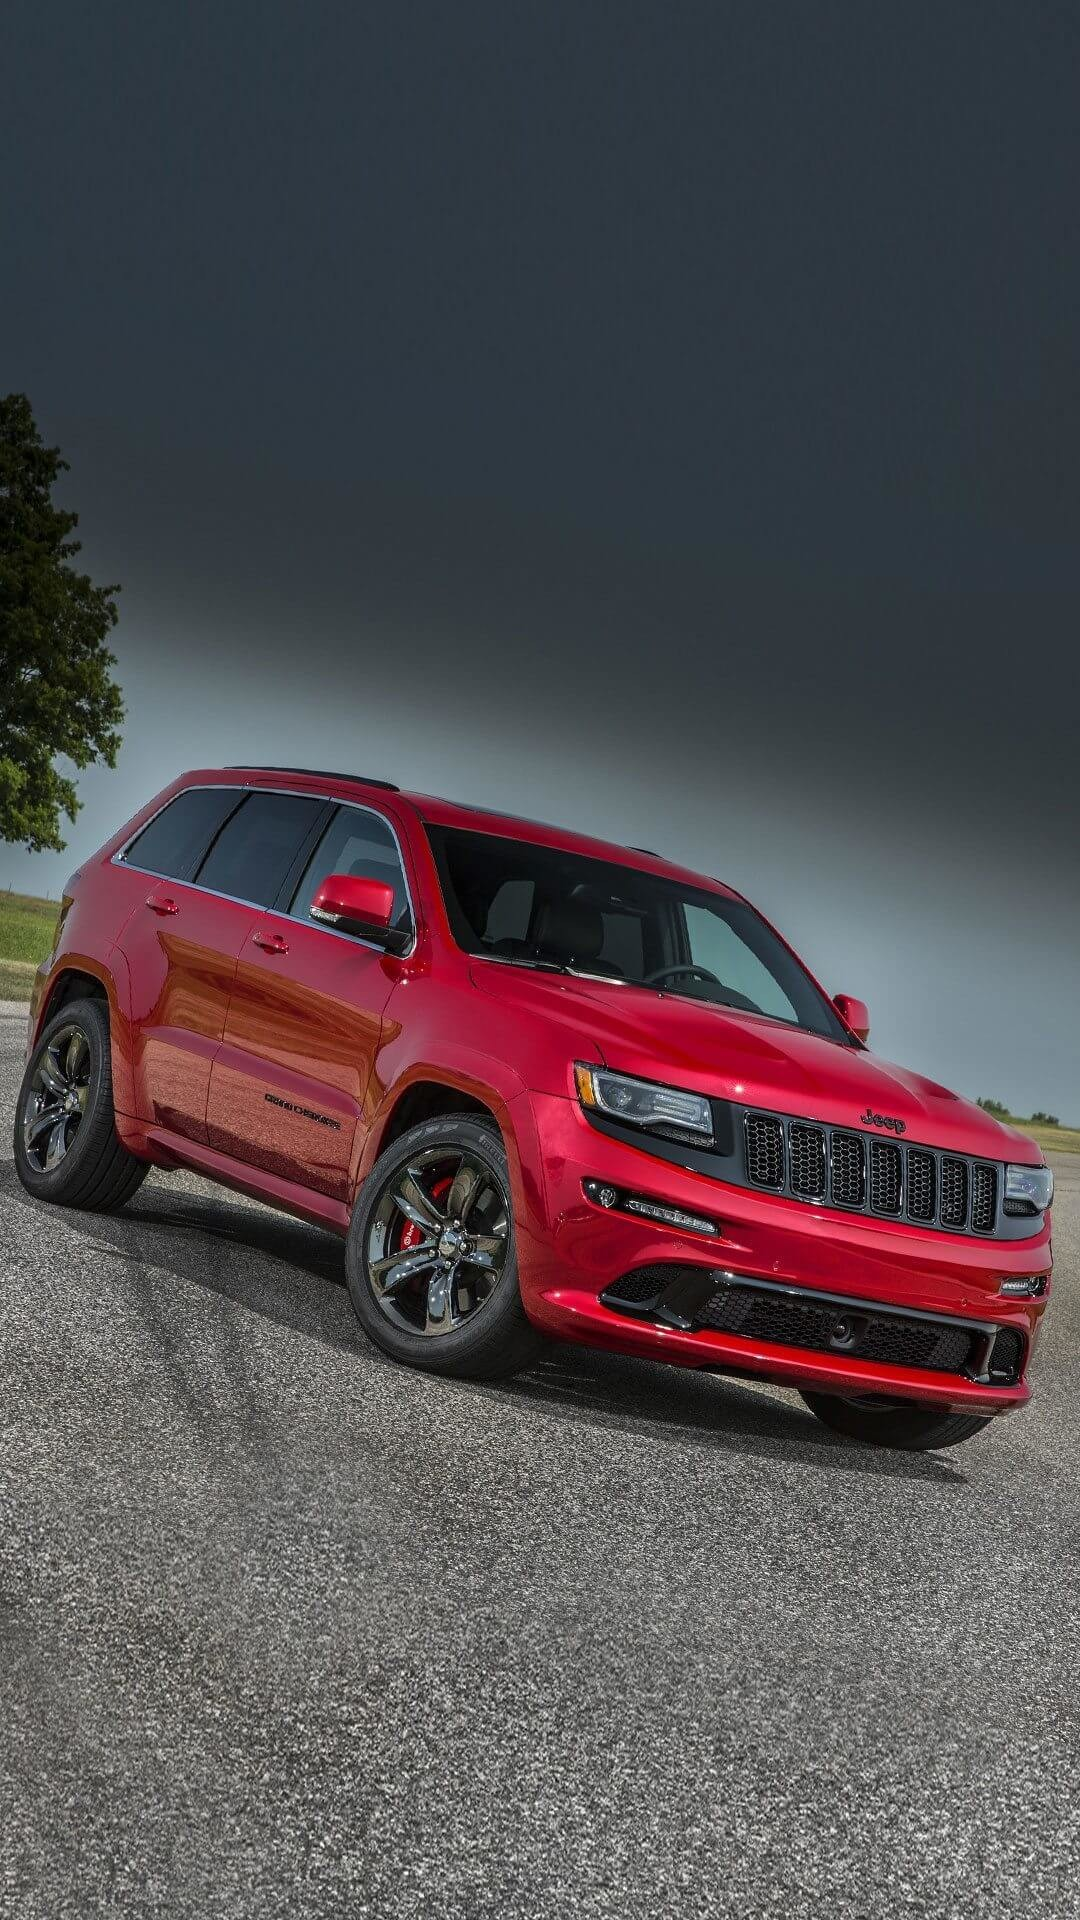 Res: 1080x1920, 2017 Jeep Grand Cherokee Wallpaper For iPhone 6 - HD Wallpaper iPhone